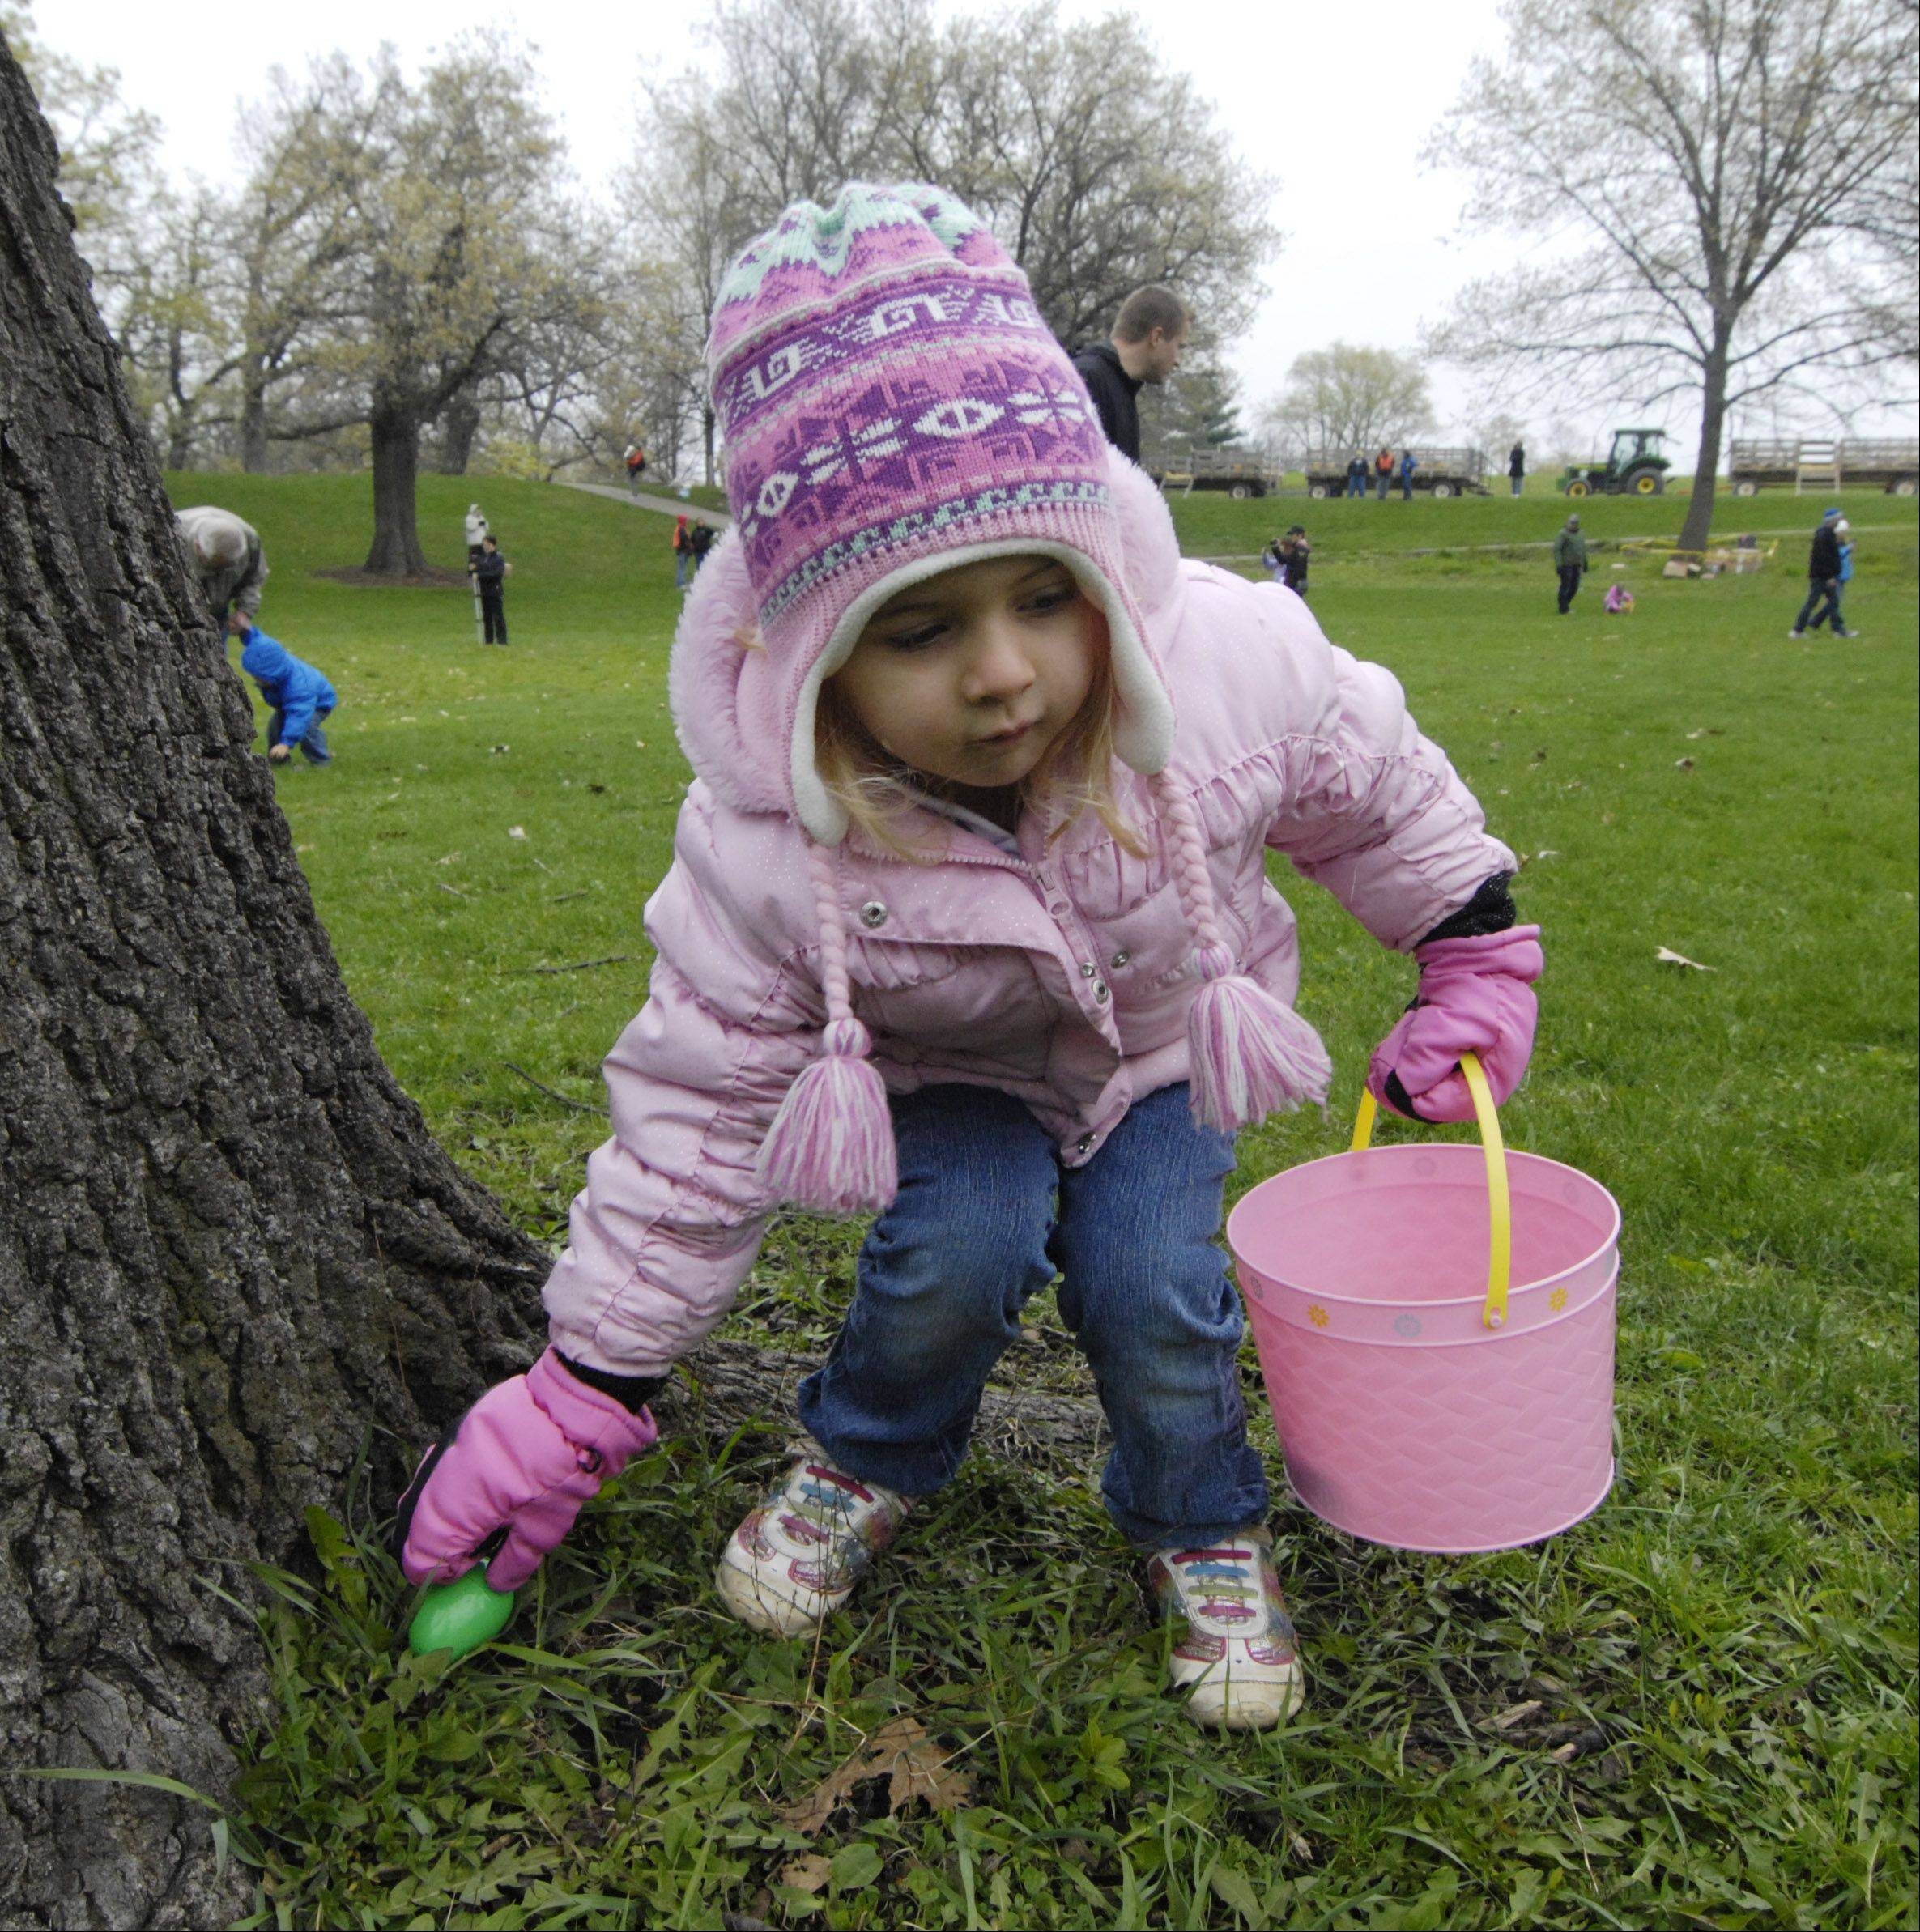 Addison Kenefick, 4, of West Dundee picks up a plastic Easter egg at the base of a tree during Saturday's hunt at Randall Oaks Park in West Dundee.